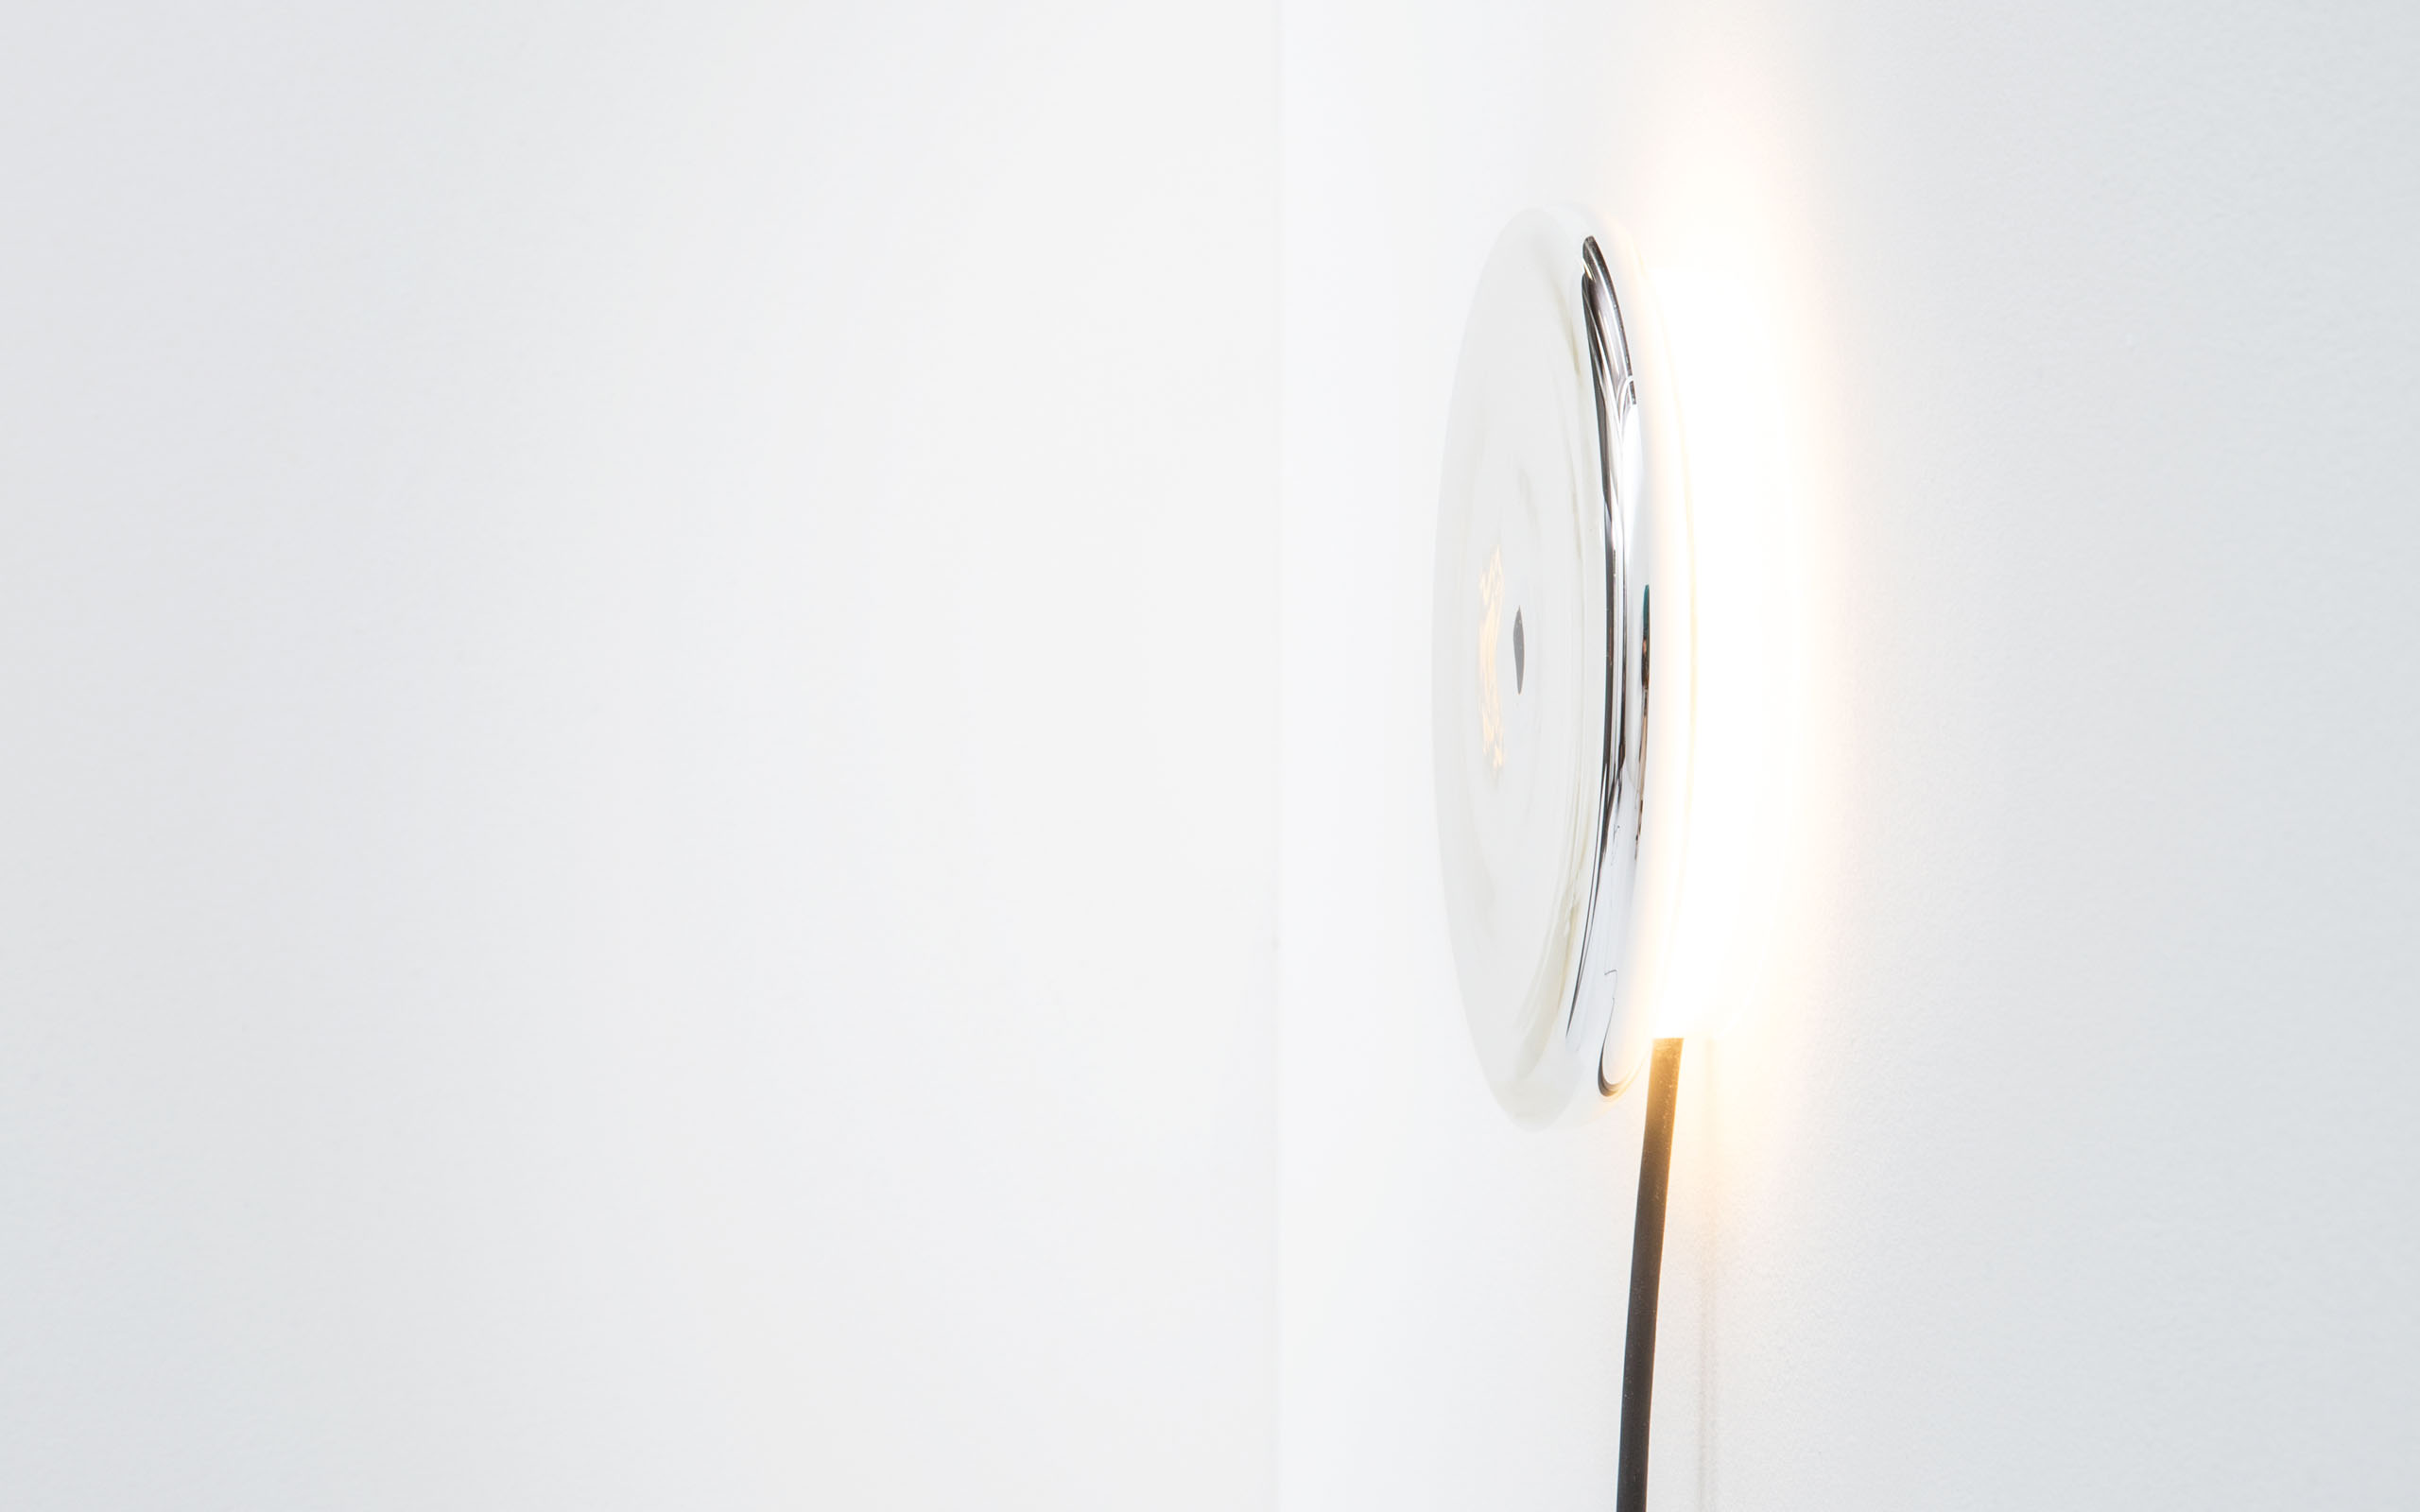 A wall light is shown from the side. The body of the light, a silver plated disc reflects the light emitted behind it.